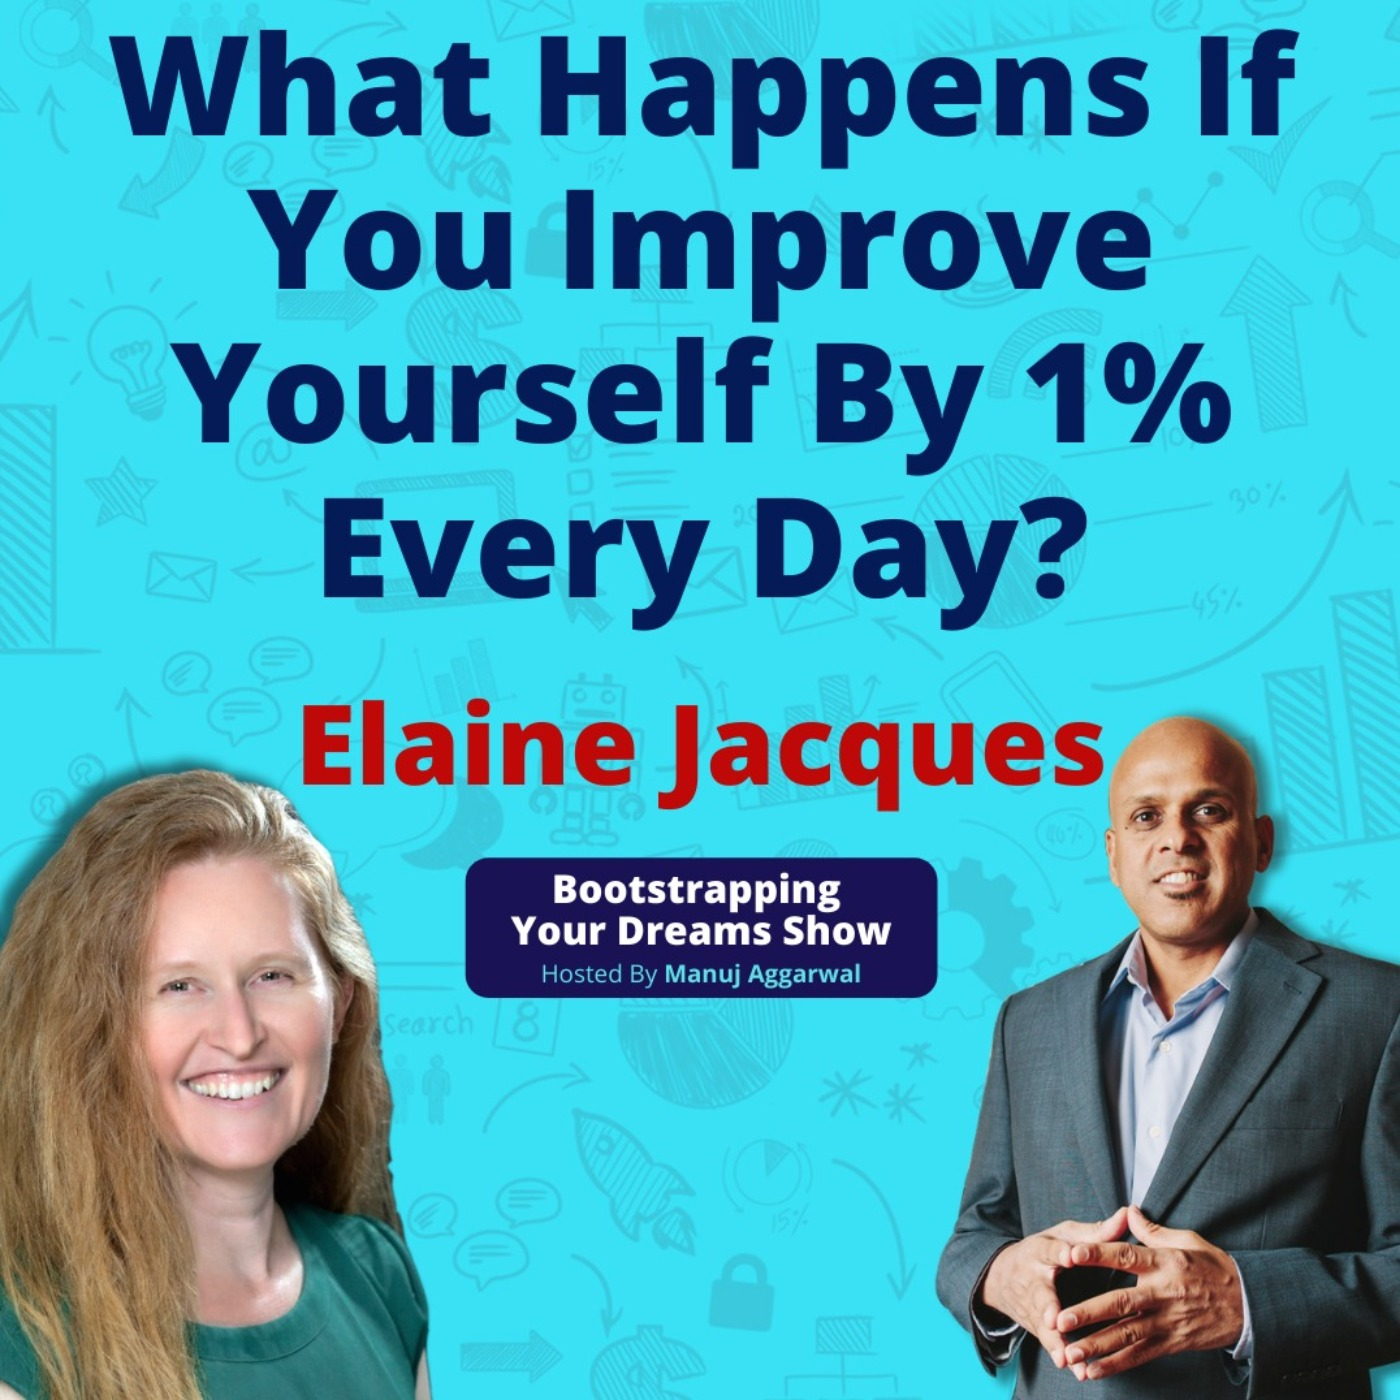 #170 Improve yourself by 1% every day   Crazy simple technique to achieve your goals rapidly   Elaine Jacques